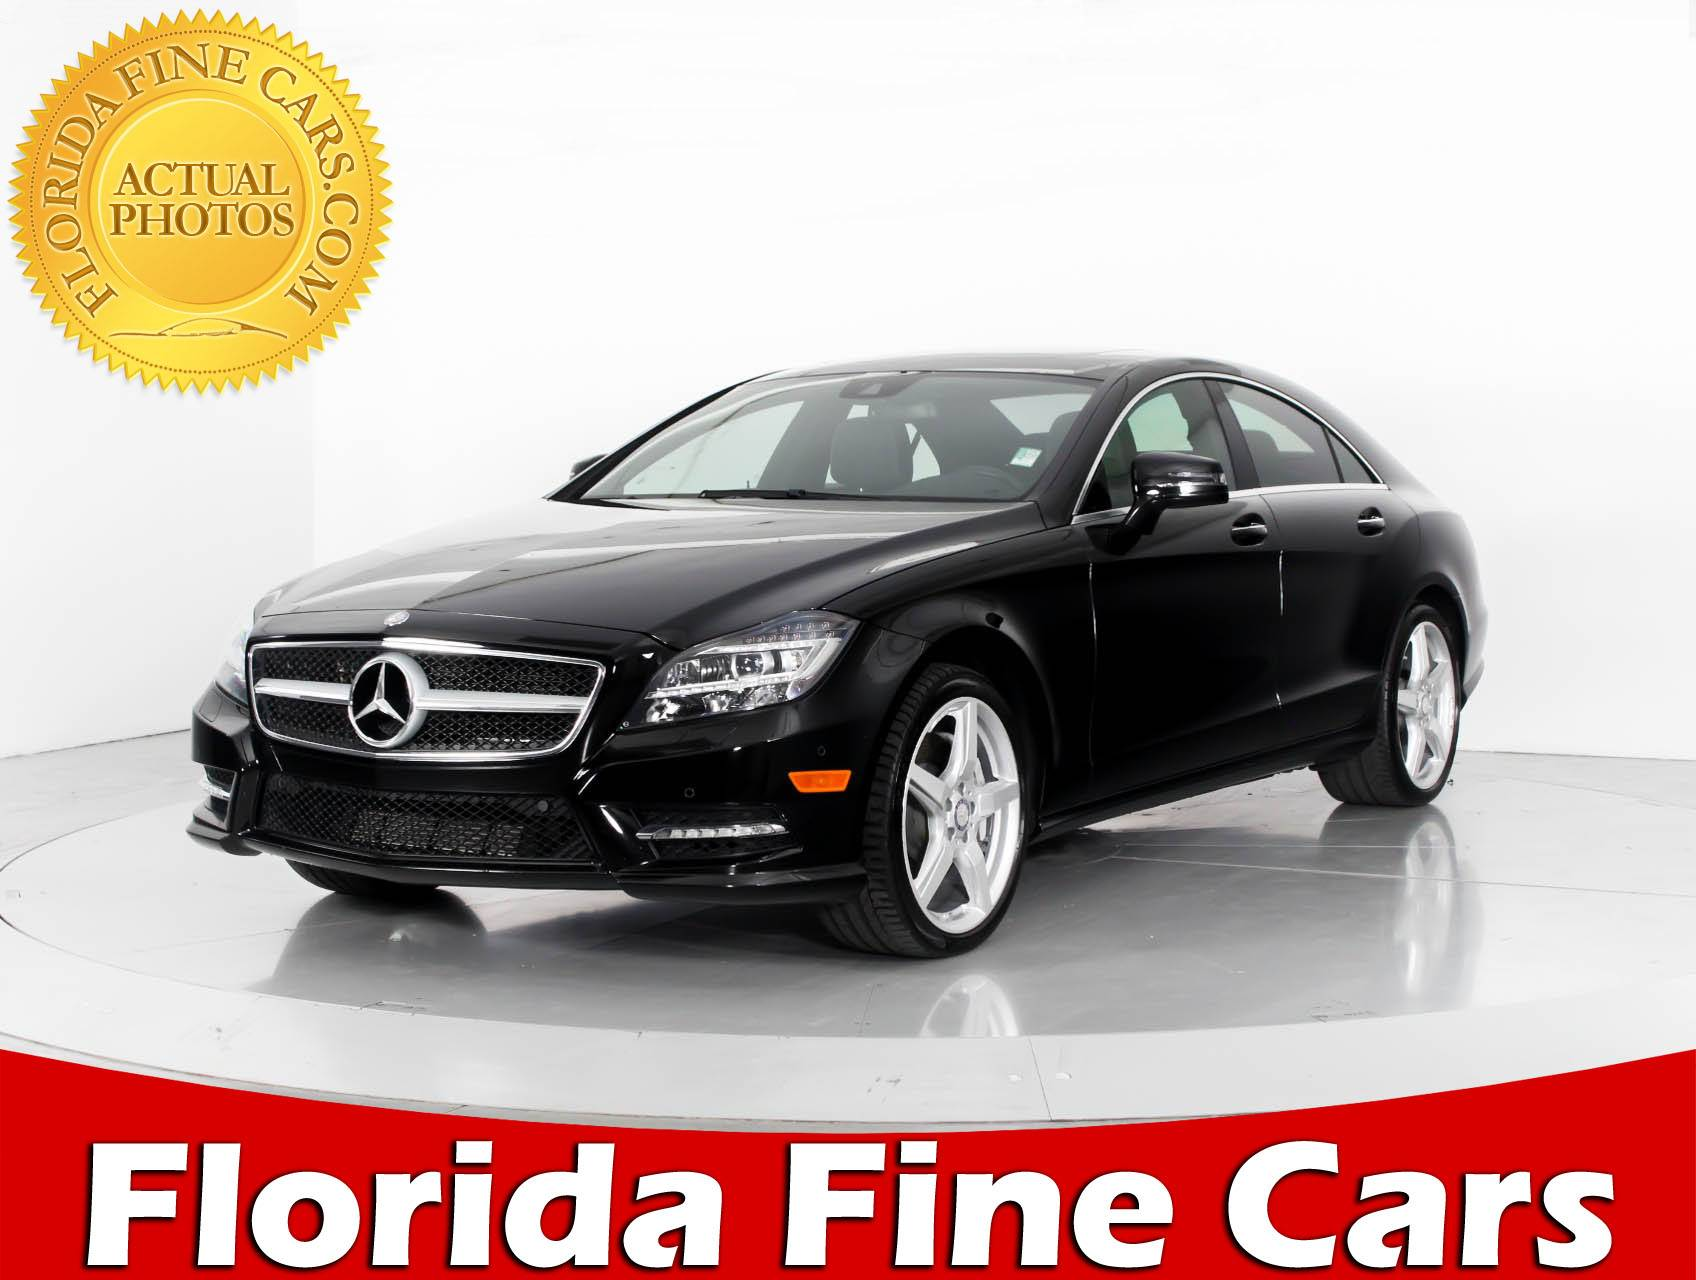 Used 2014 MERCEDES BENZ CLS CLASS CLS550 Sedan For Sale In MIAMI, FL |  84328 | Florida Fine Cars